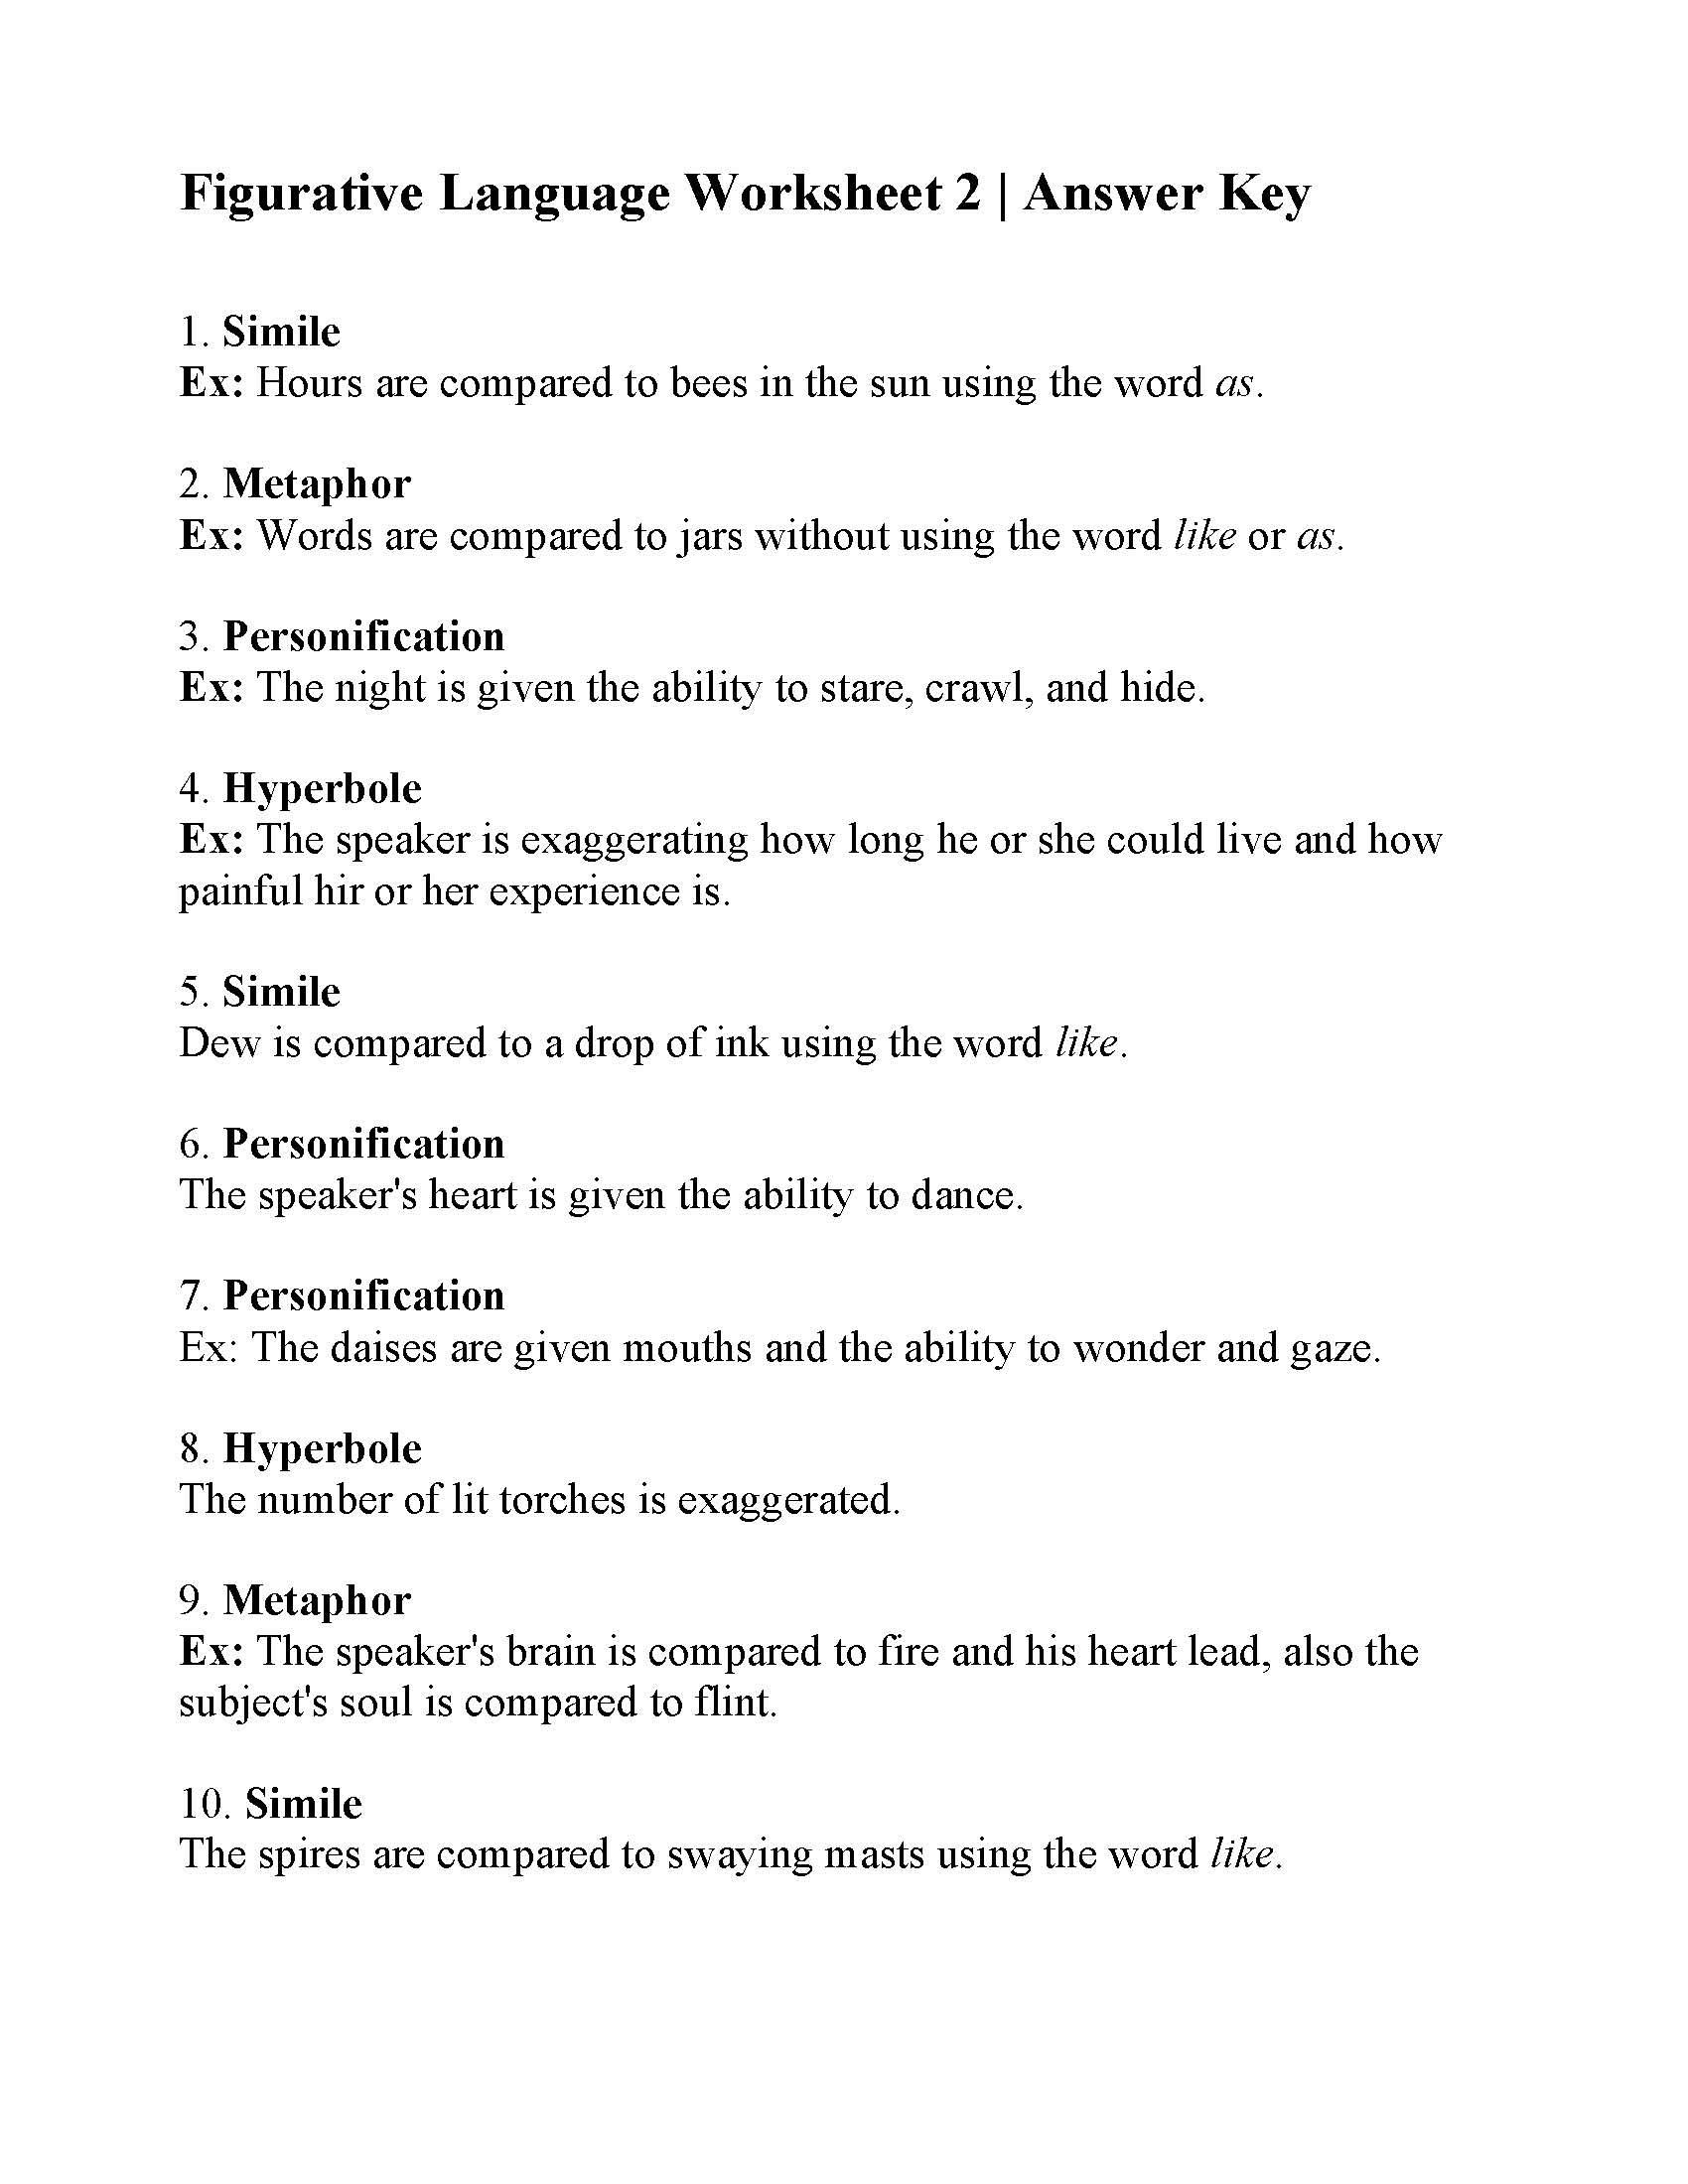 Figurative Language Worksheet 5th Grade This is the Answer Key for the Figurative Language Worksheet